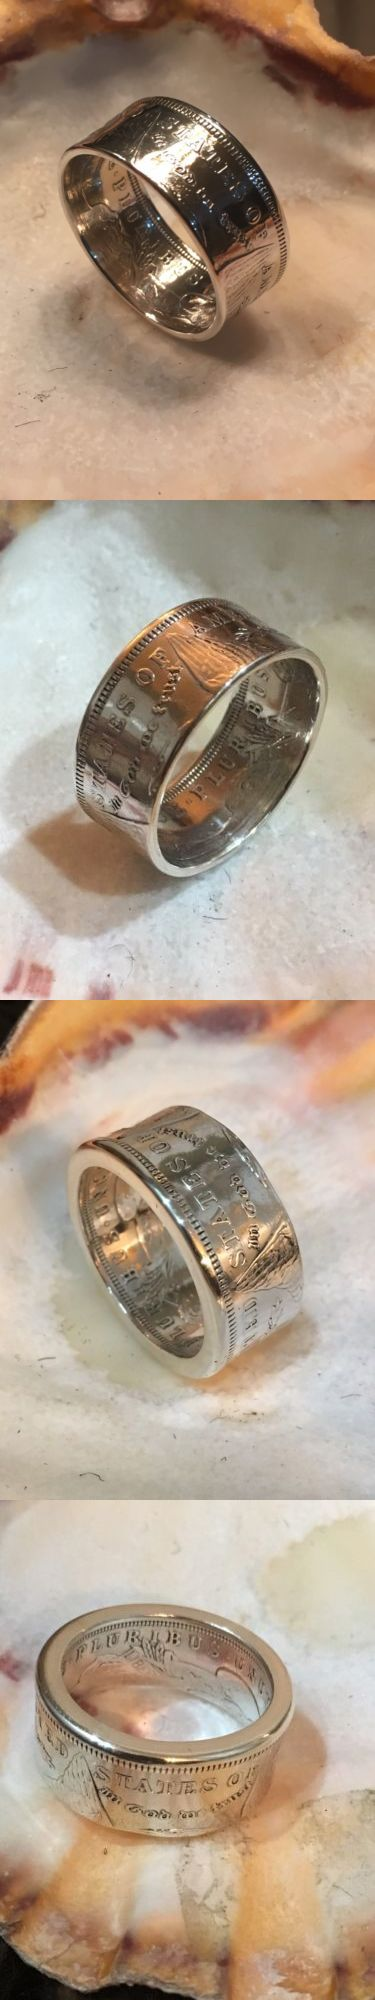 Rings 110666: Handcrafted Morgan Silver Dollar Coin Ring Men S Wedding Band 90% Silver Sz7-16 -> BUY IT NOW ONLY: $75 on eBay!